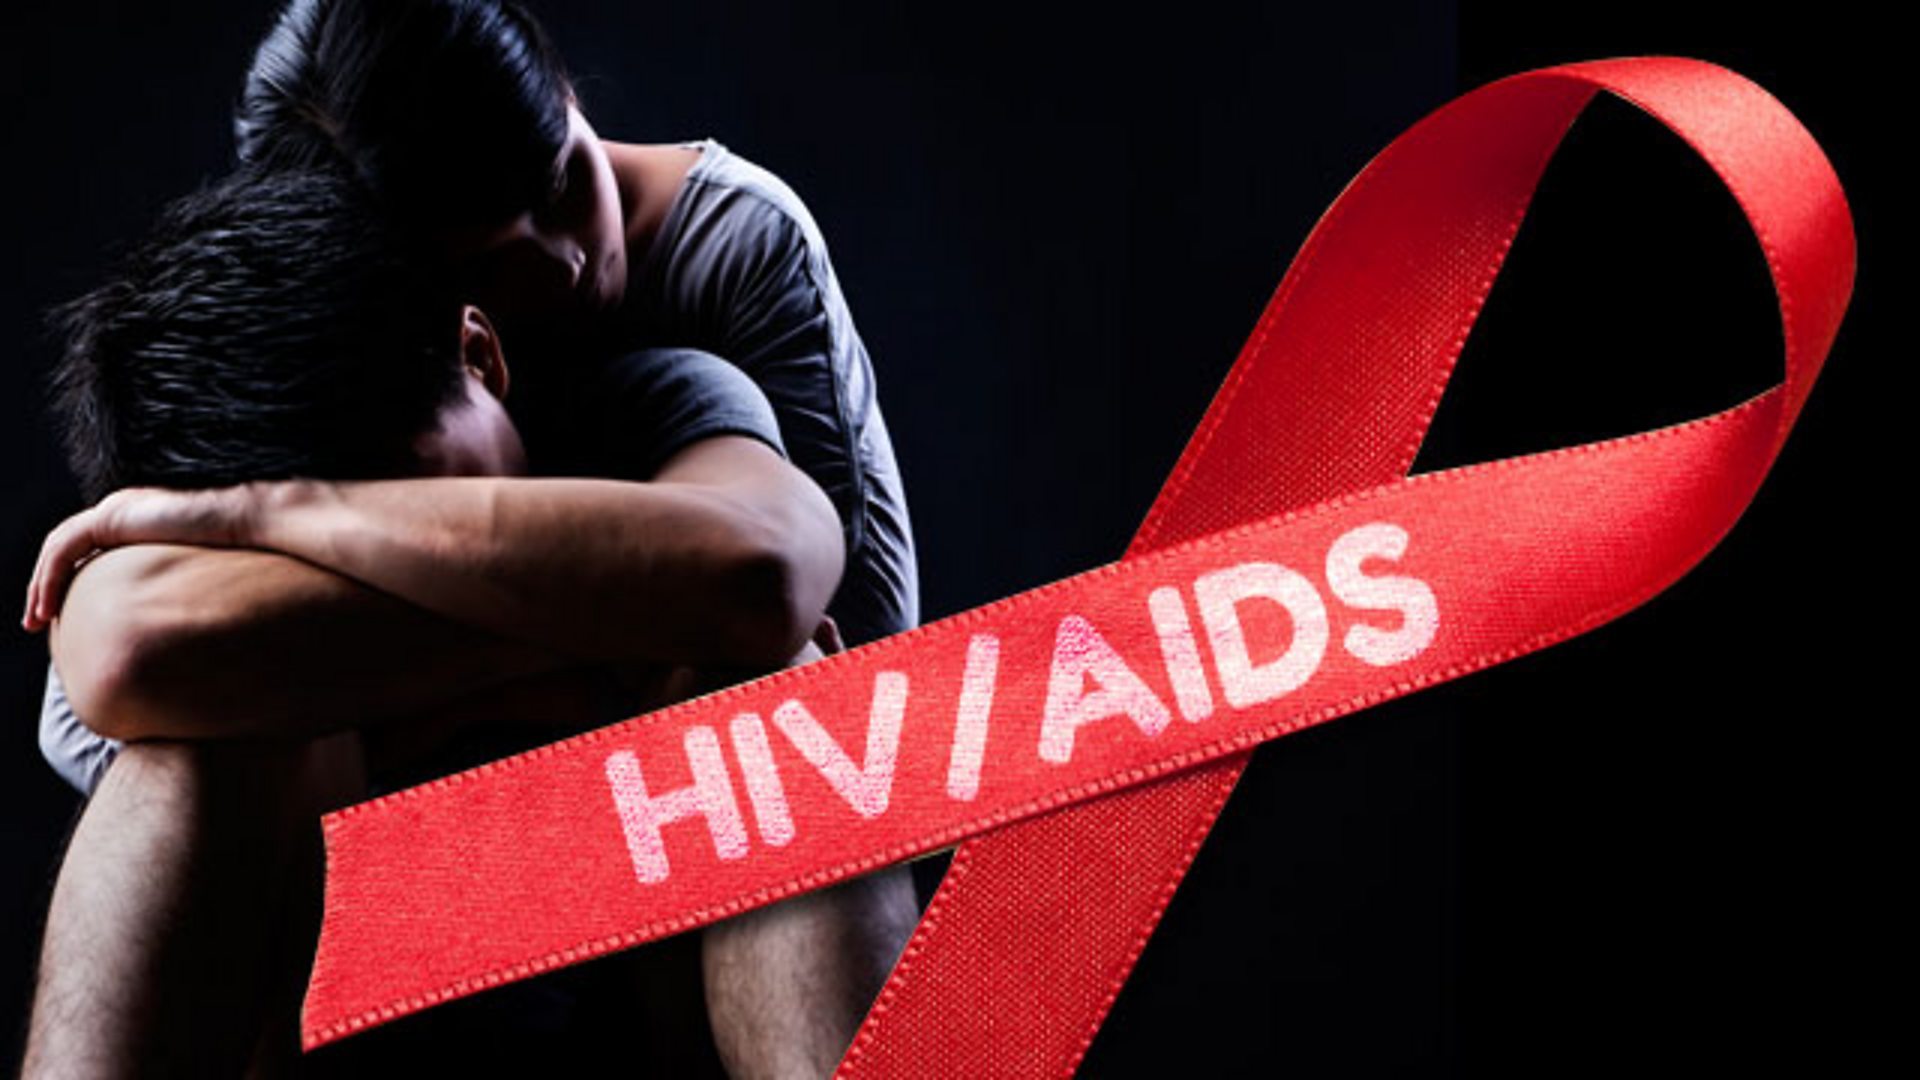 aids a major cause of death The relationship among economic development, health, and the potential roles of mhealth james g kahn hiv/aids is a major cause of death in every other region projected leading causes of death in 2030.